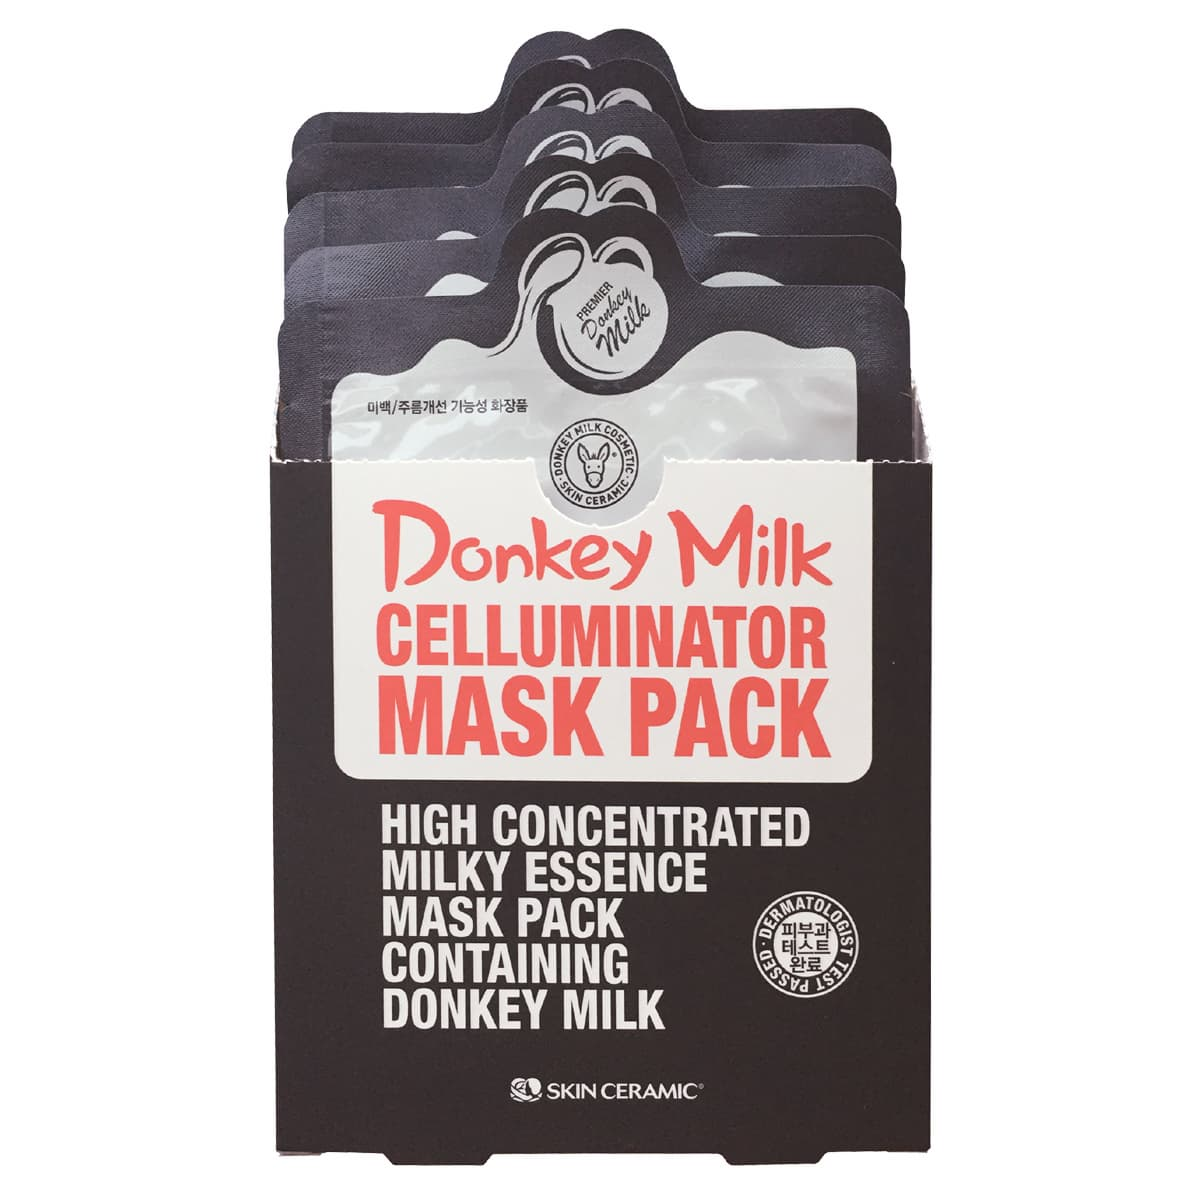 Donkey Milk Celluminator Mask Pack